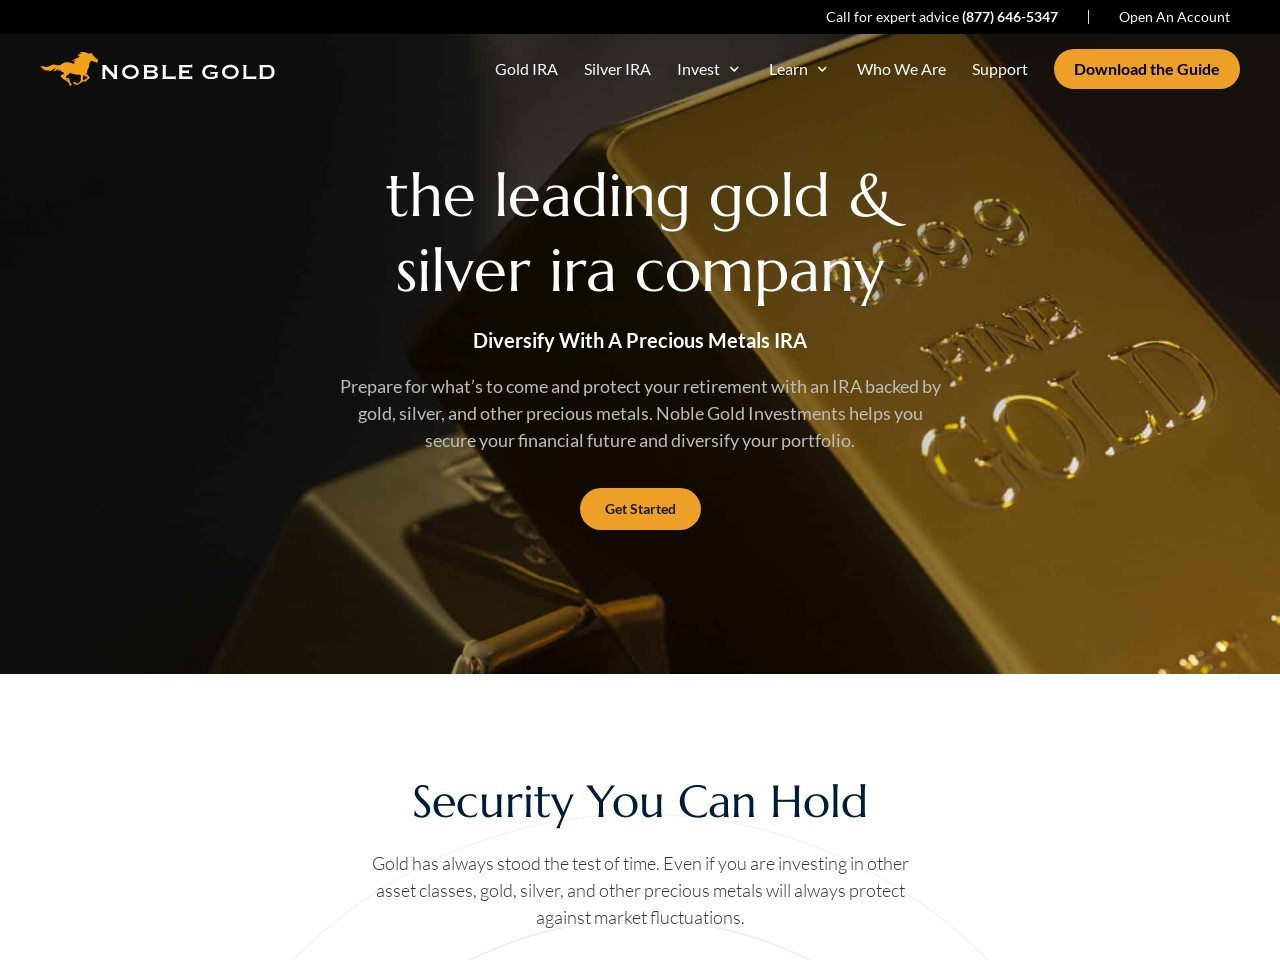 noble-gold-investments